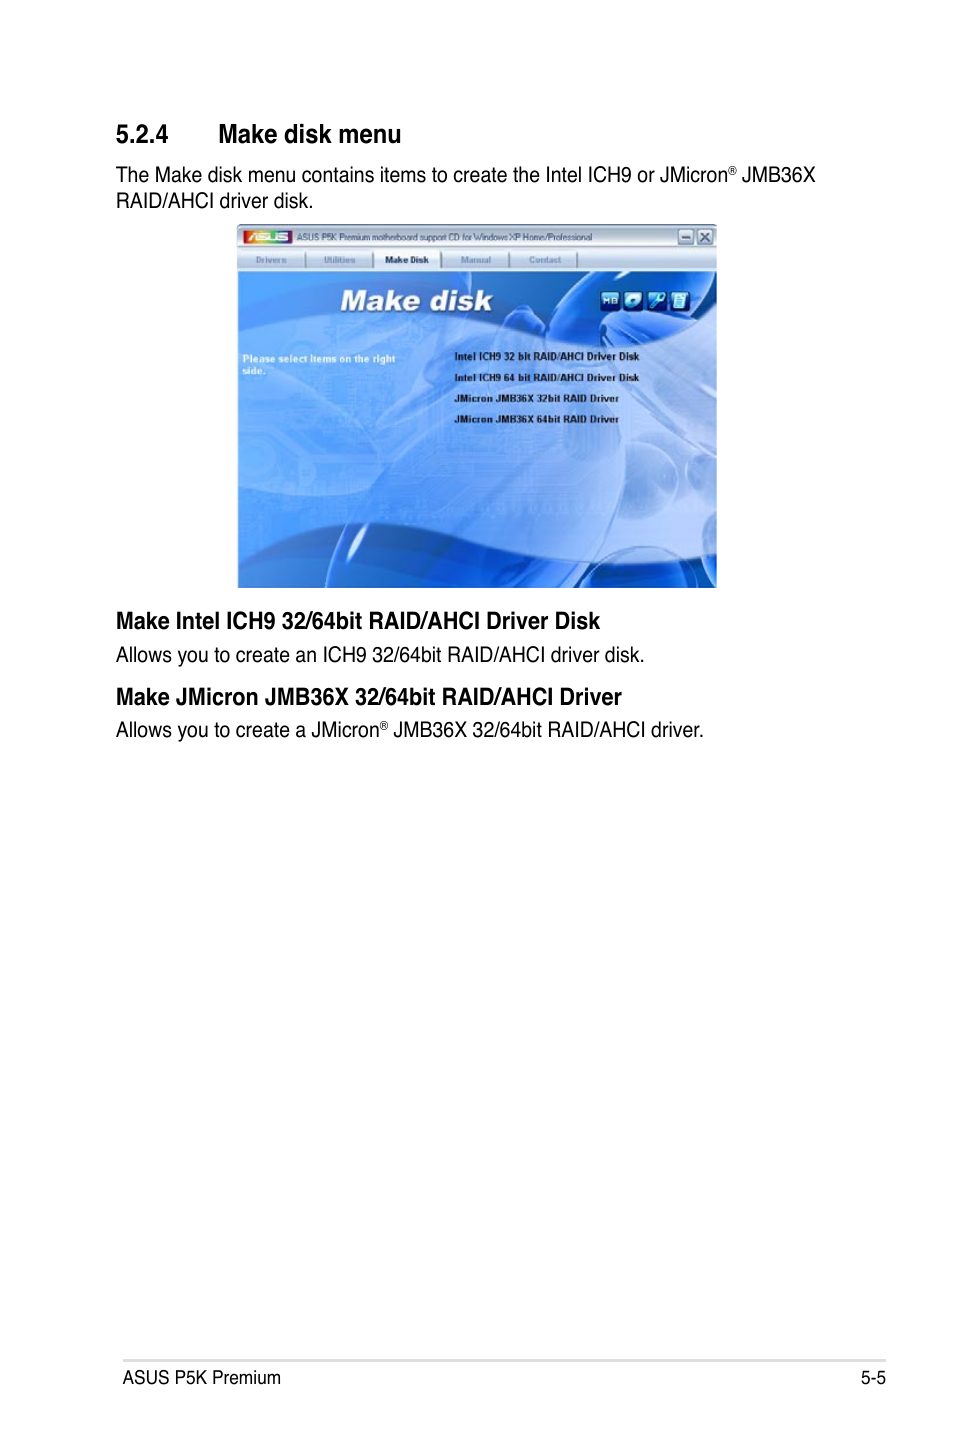 4 make disk menu | Asus P5K Premium/WiFi-AP User Manual